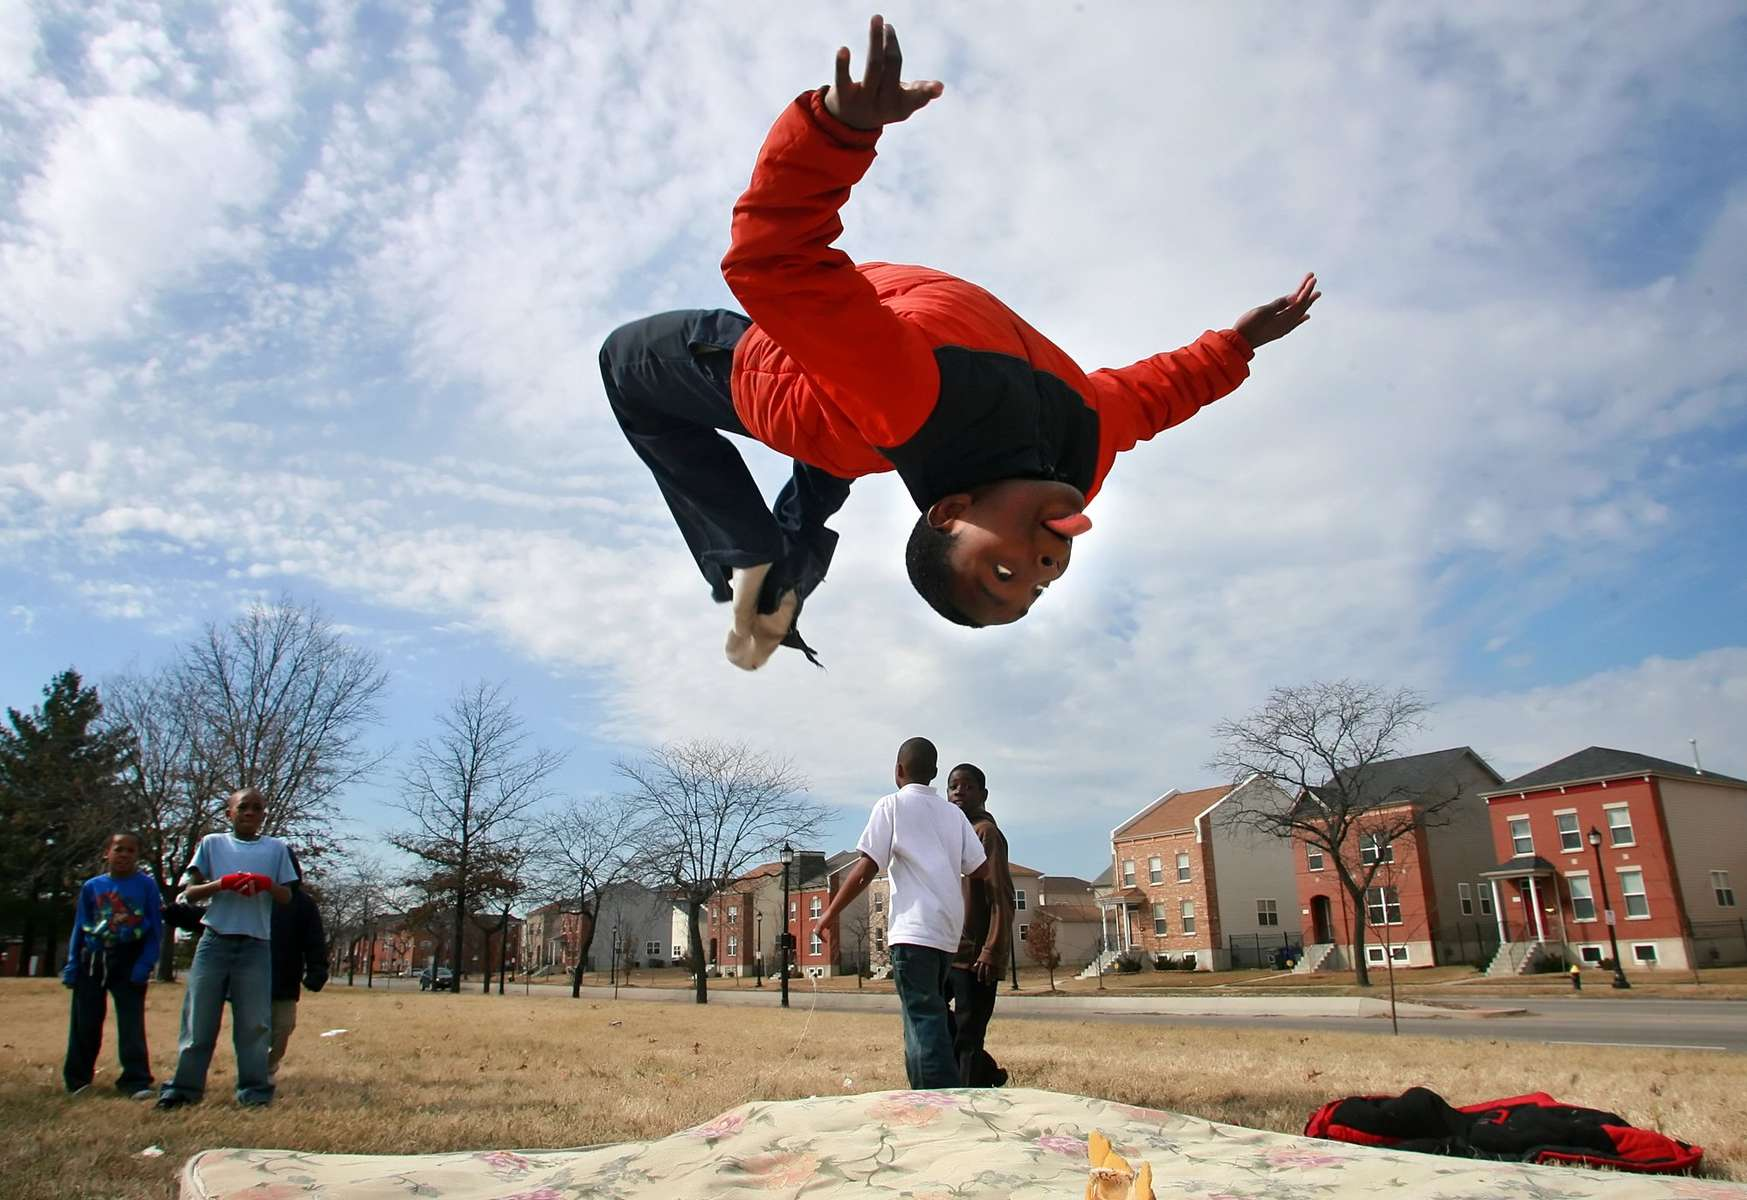 Dwight Jones, 13, tumbles over an old mattress he and his friends were playing with in south St. Louis. Jones says he likes the energy of tumbling and learned his skills from his brother and lots of practice.David Carson | Post-Dispatch